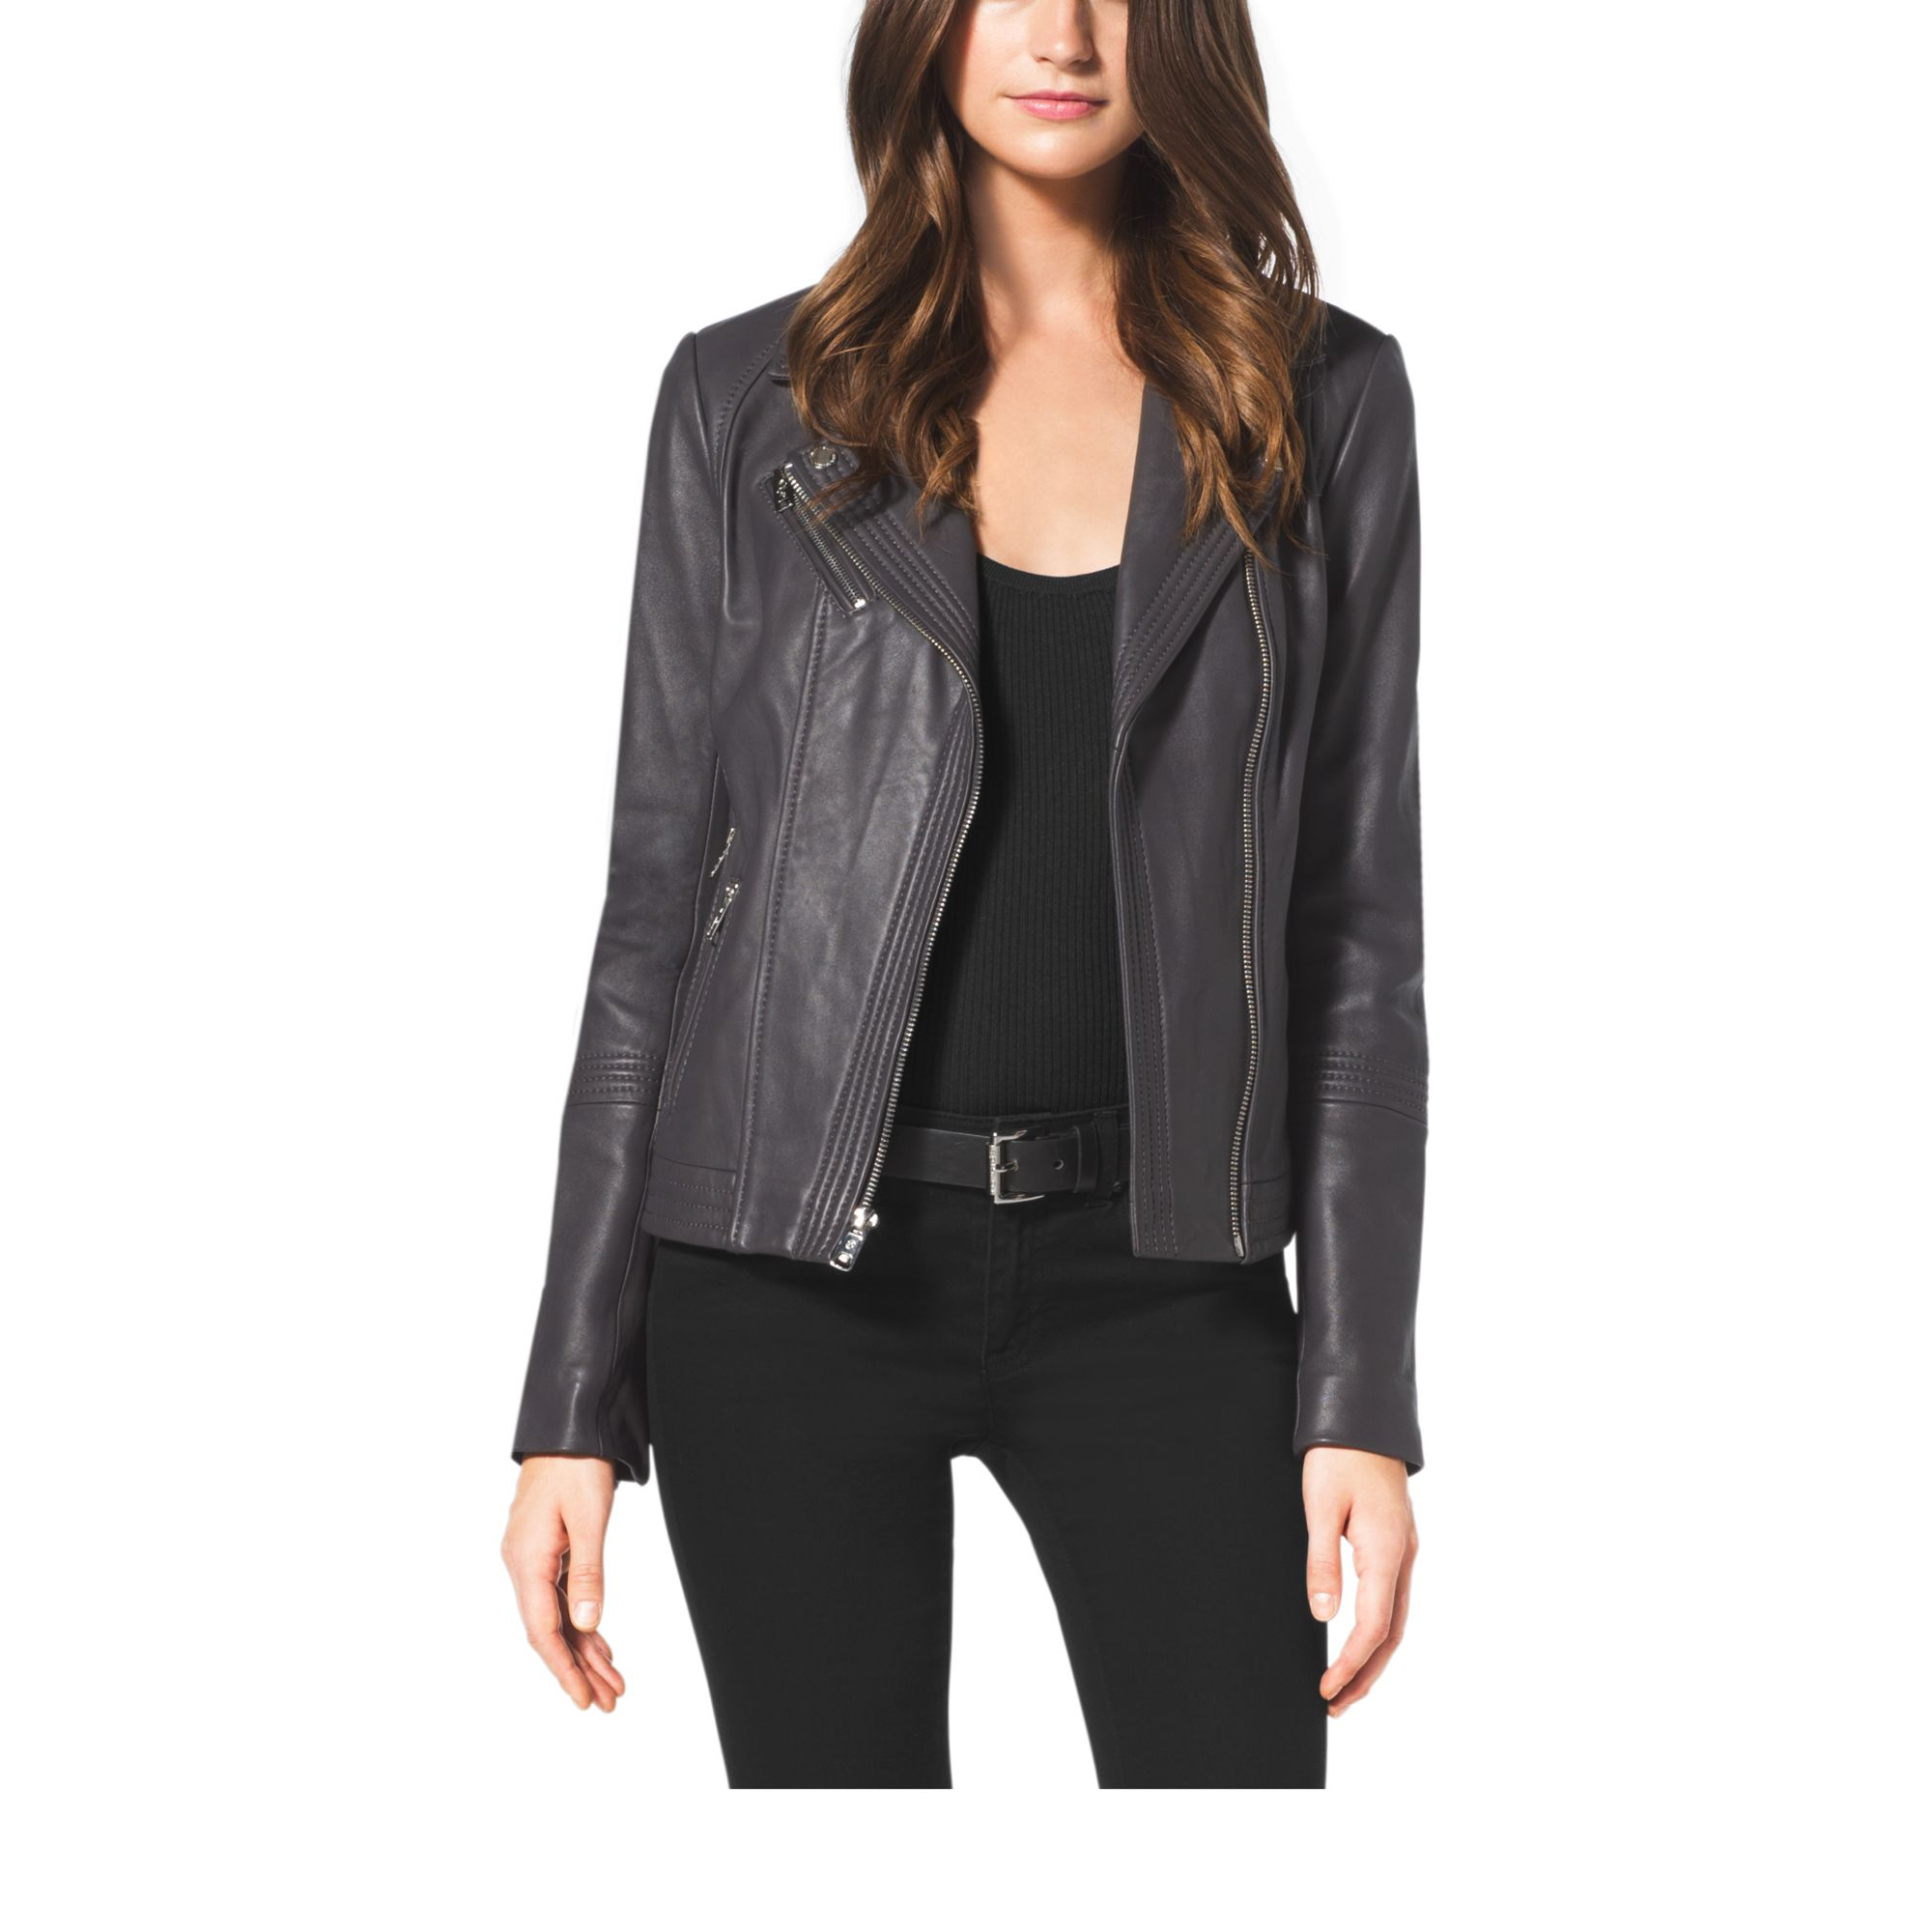 Property Brothers Designs Michael Kors Leather Moto Jacket In Gray Lyst